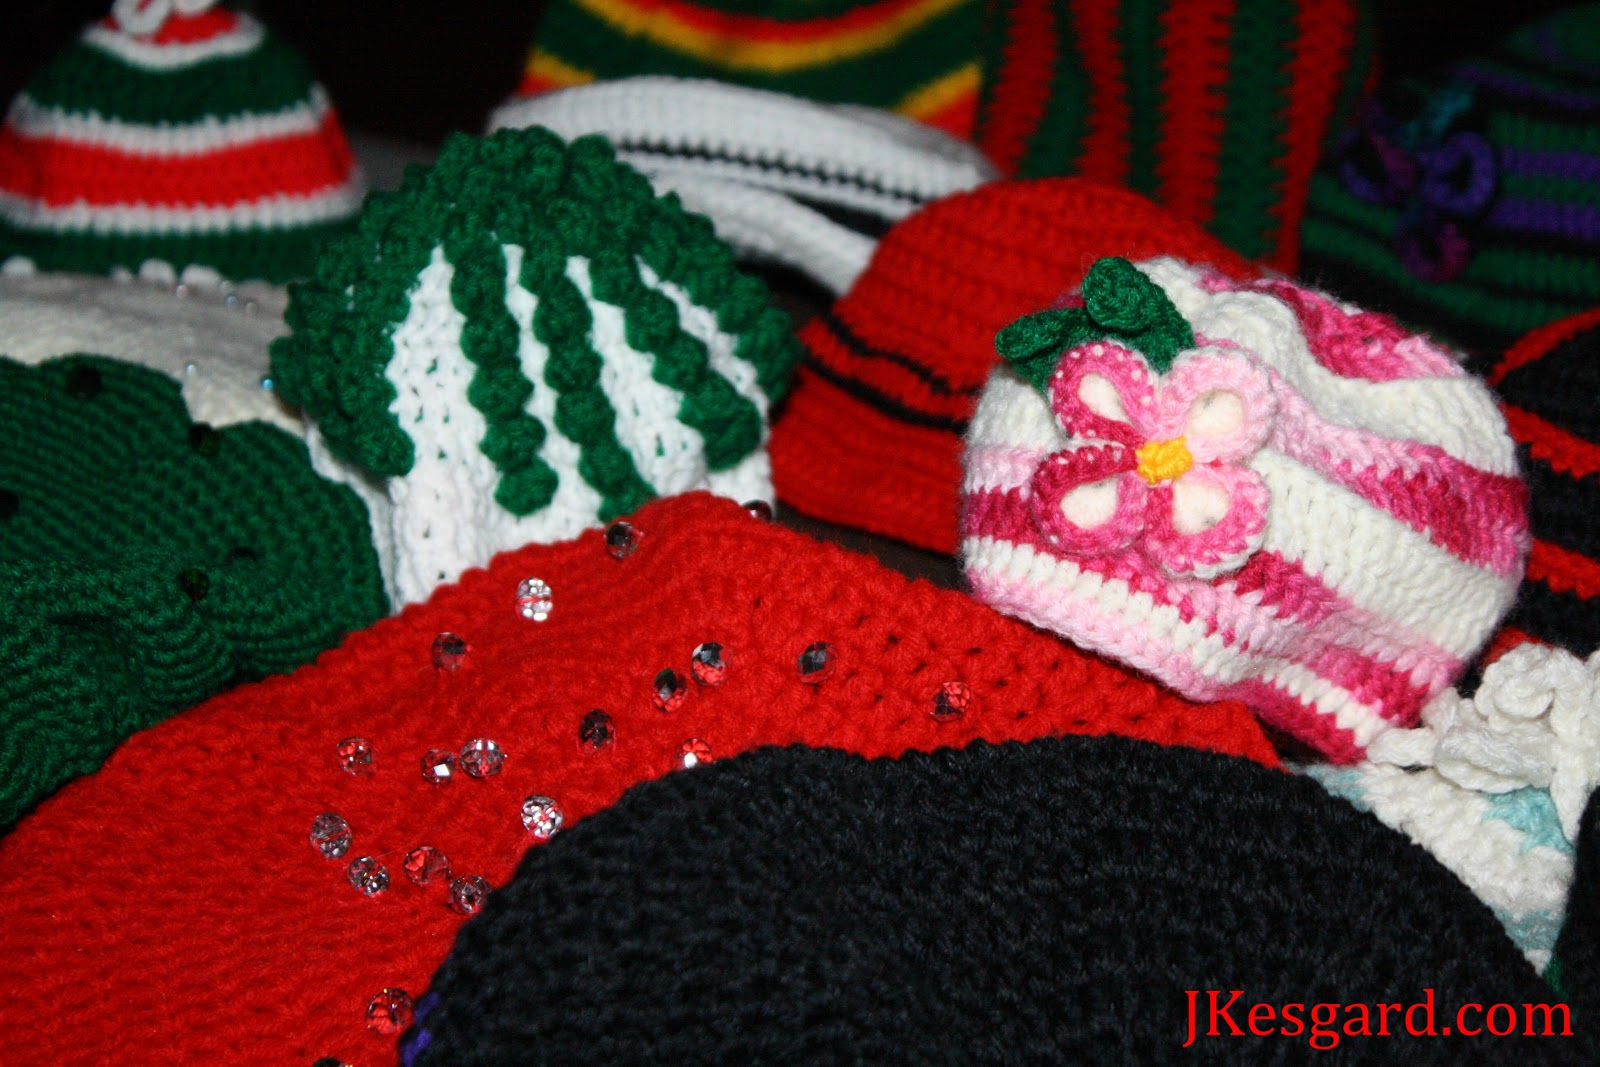 hats with bling, crocheting, lots of holiday colors